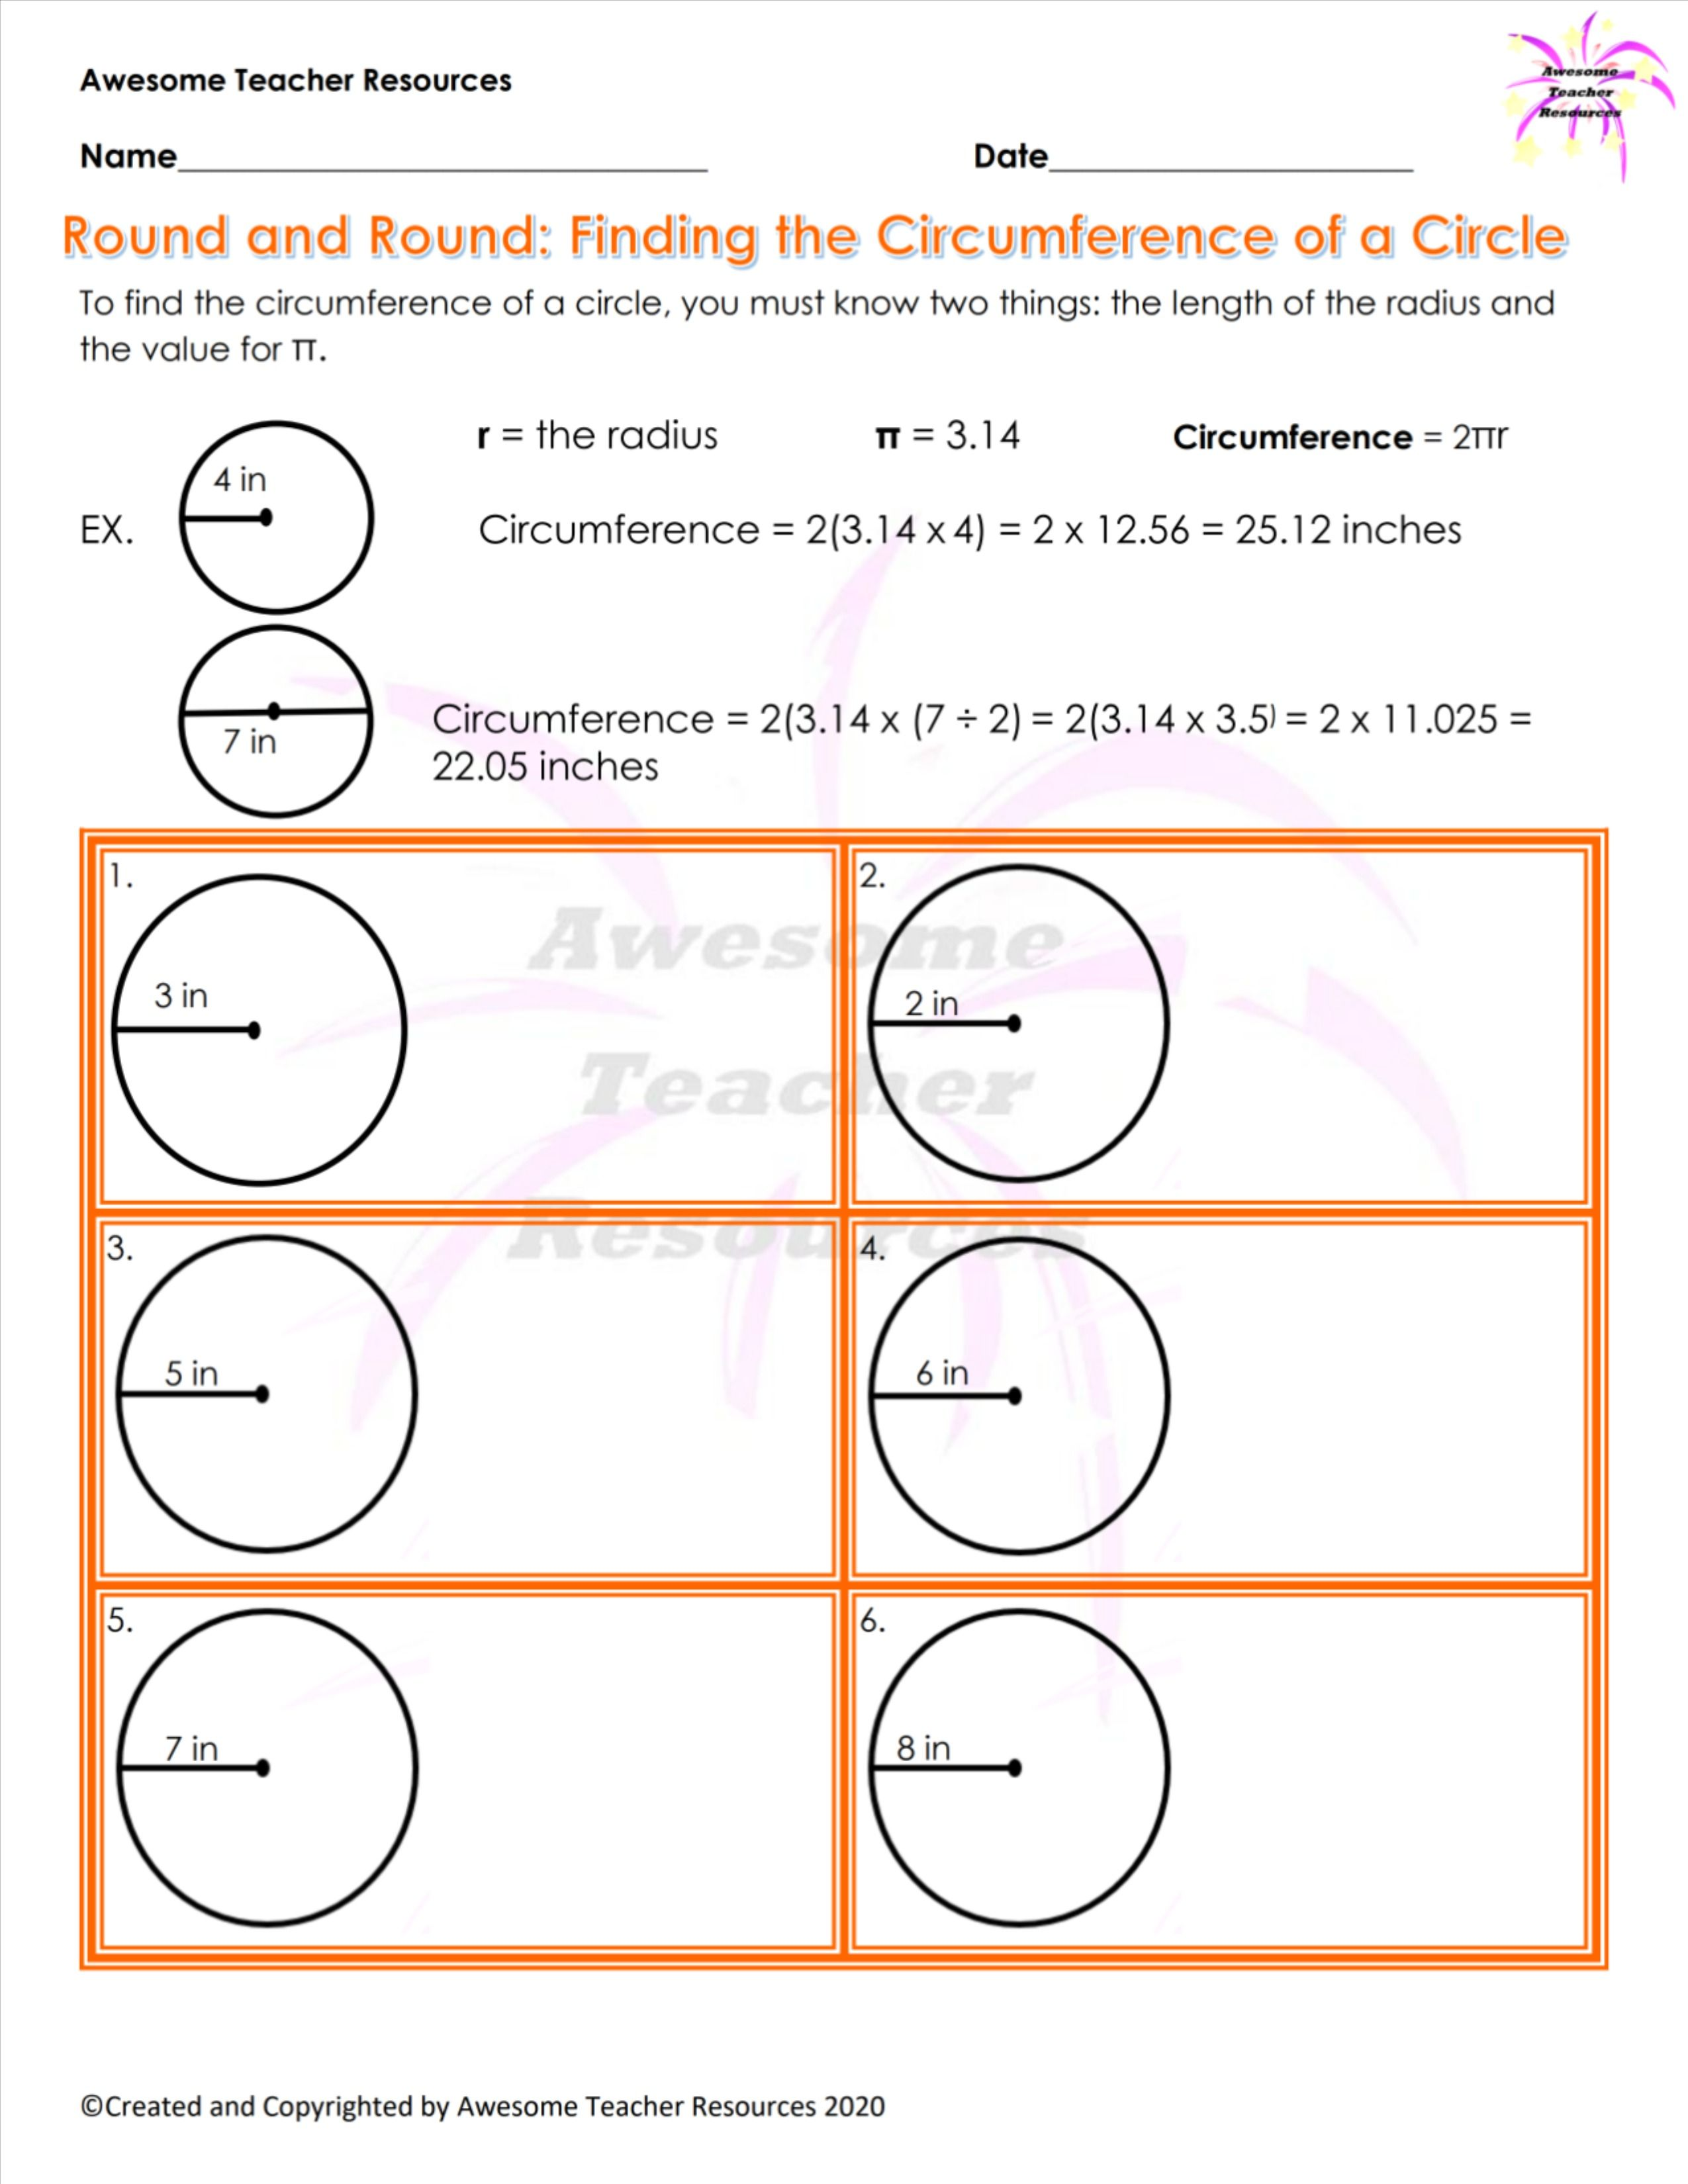 Round And Round Finding The Circumference Of A Circle